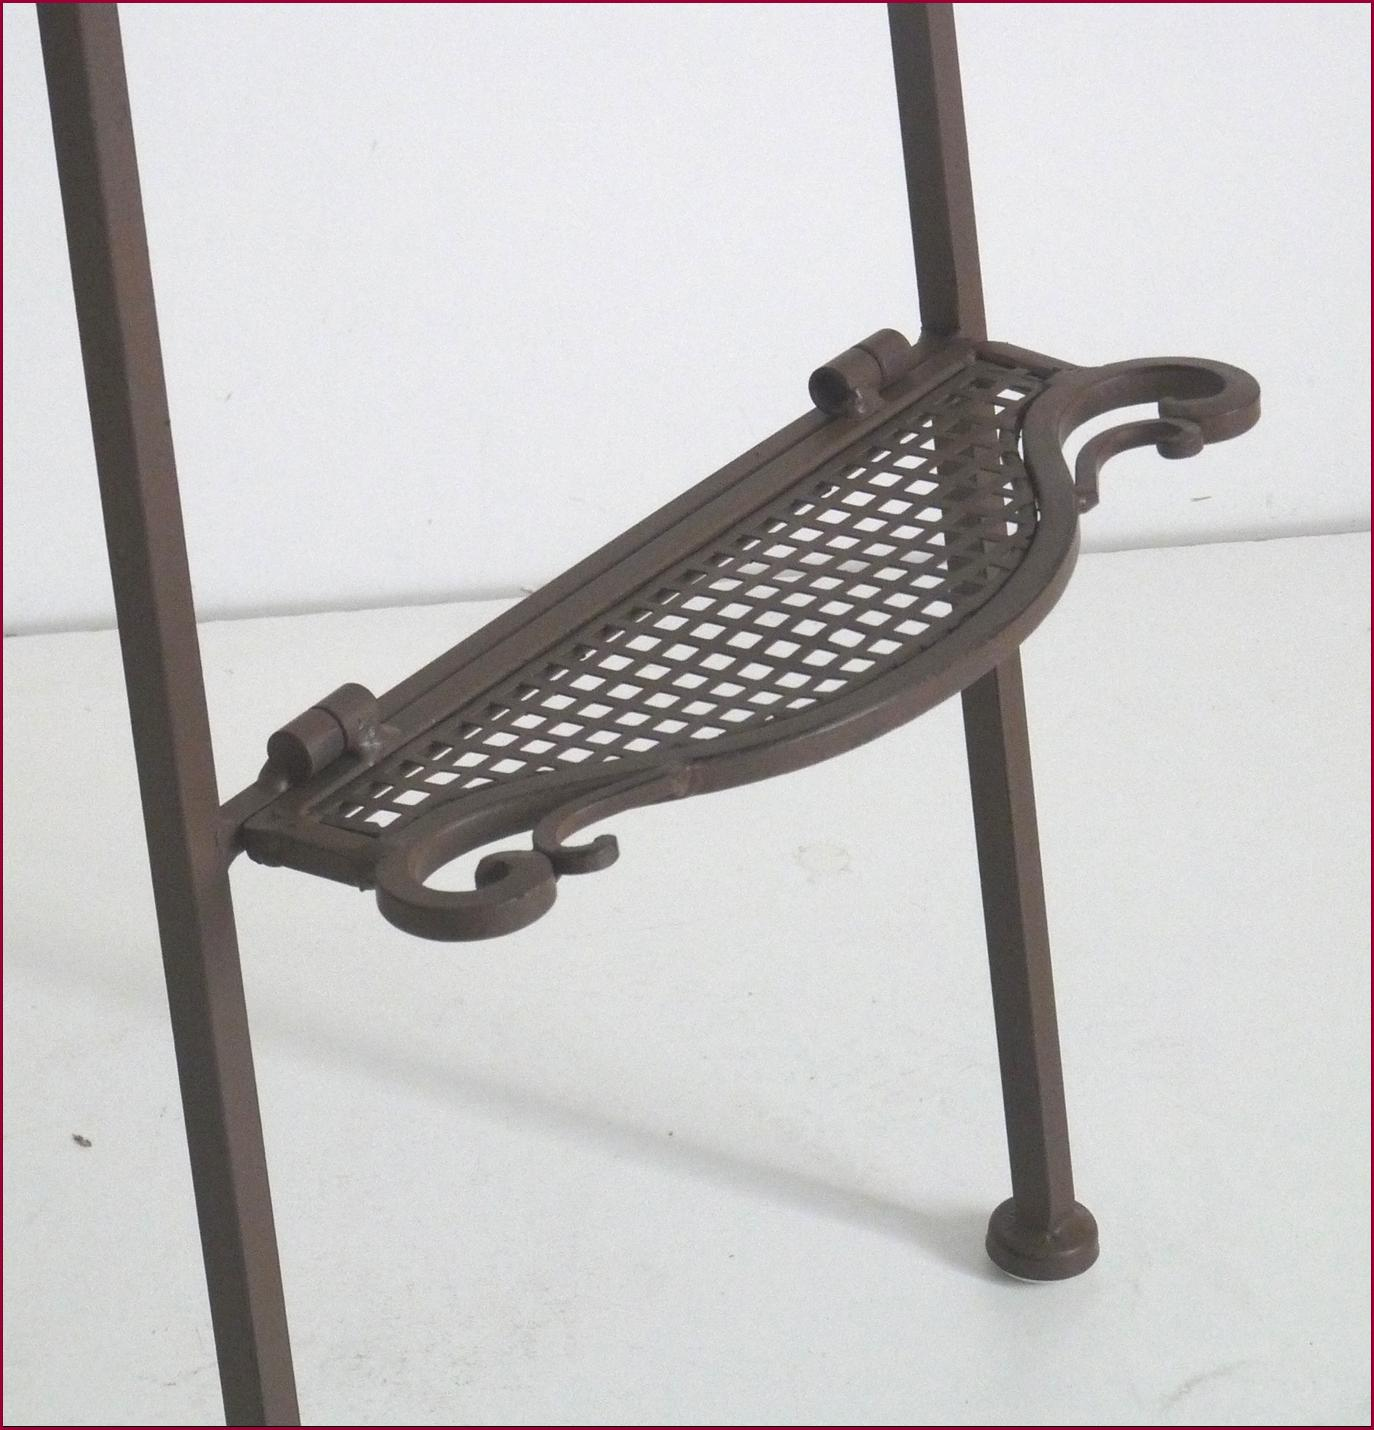 Chaise bar de bar de comptoir chaise haute en fer forge ebay for Chaise longue fer forge